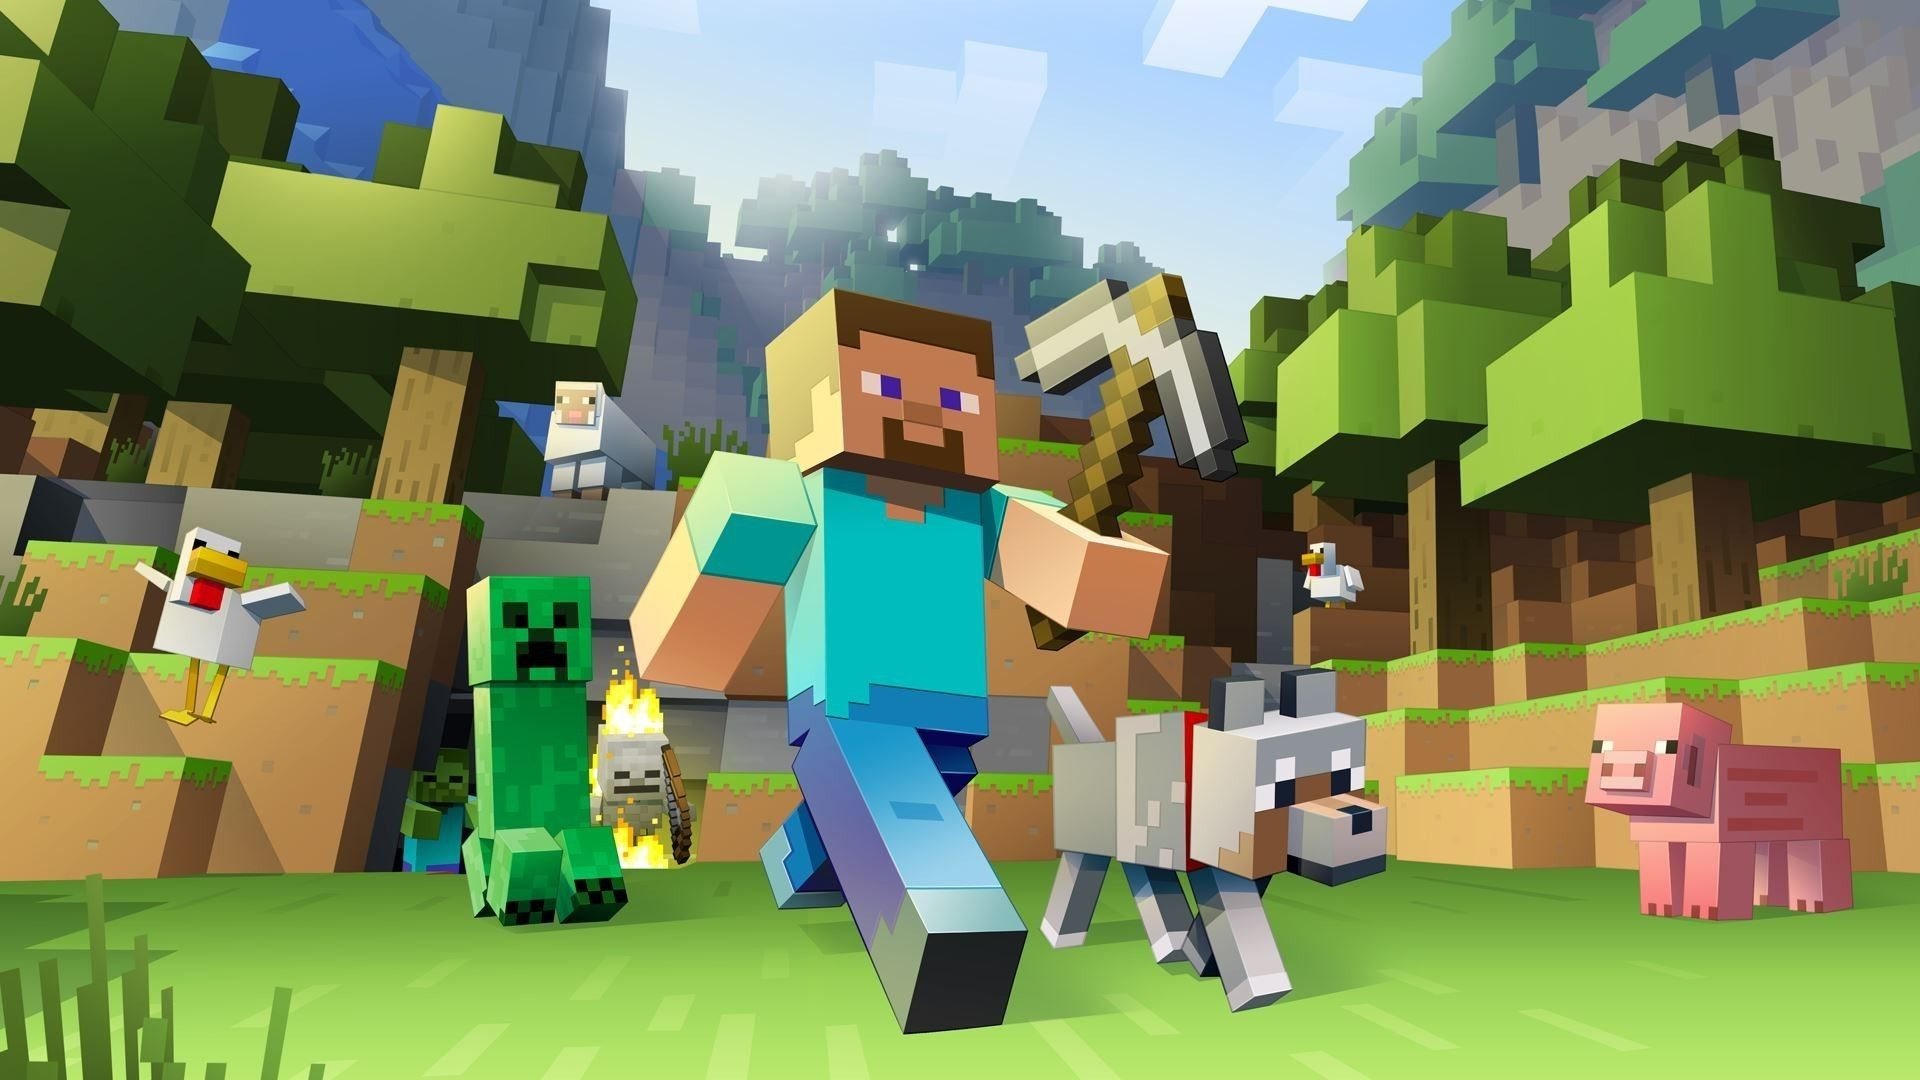 Res: 1920x1080, Minecraft Backgrounds HD Wallpaper